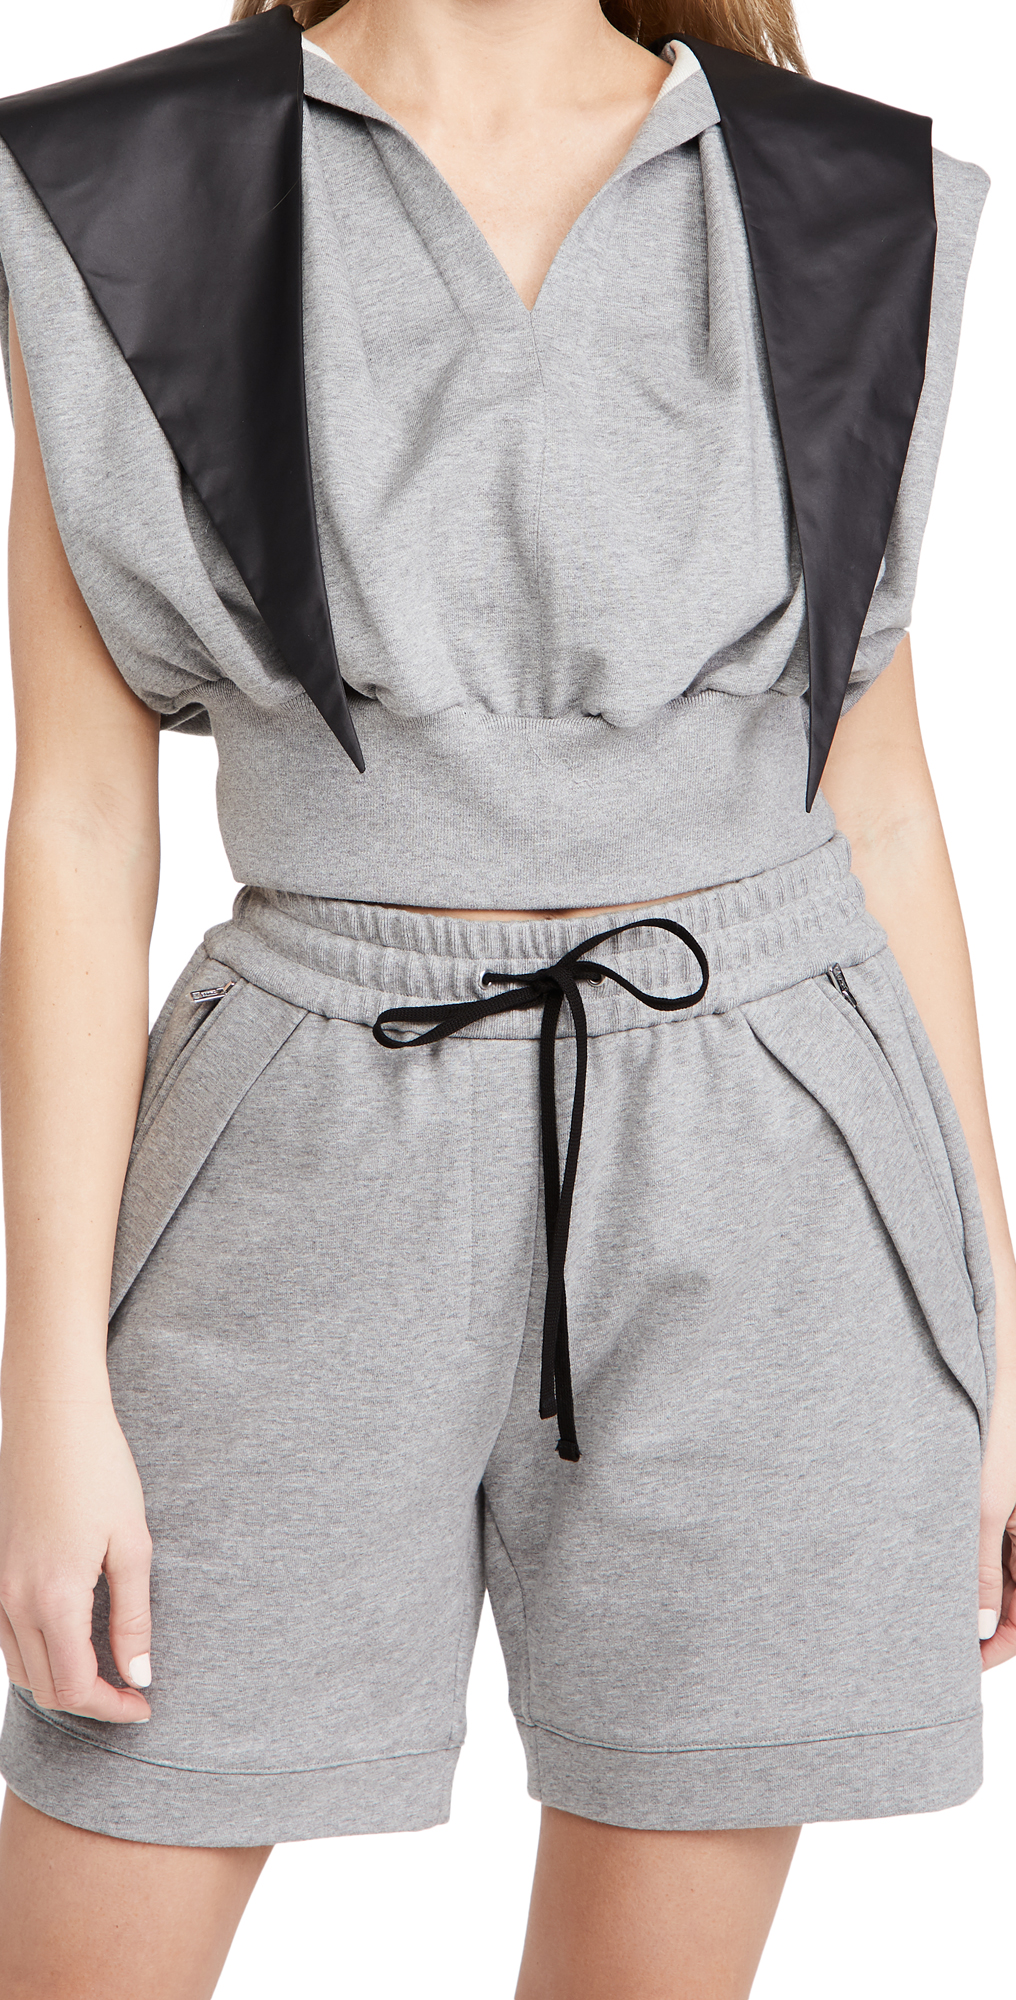 3.1 Phillip Lim French Terry Hooded Tank